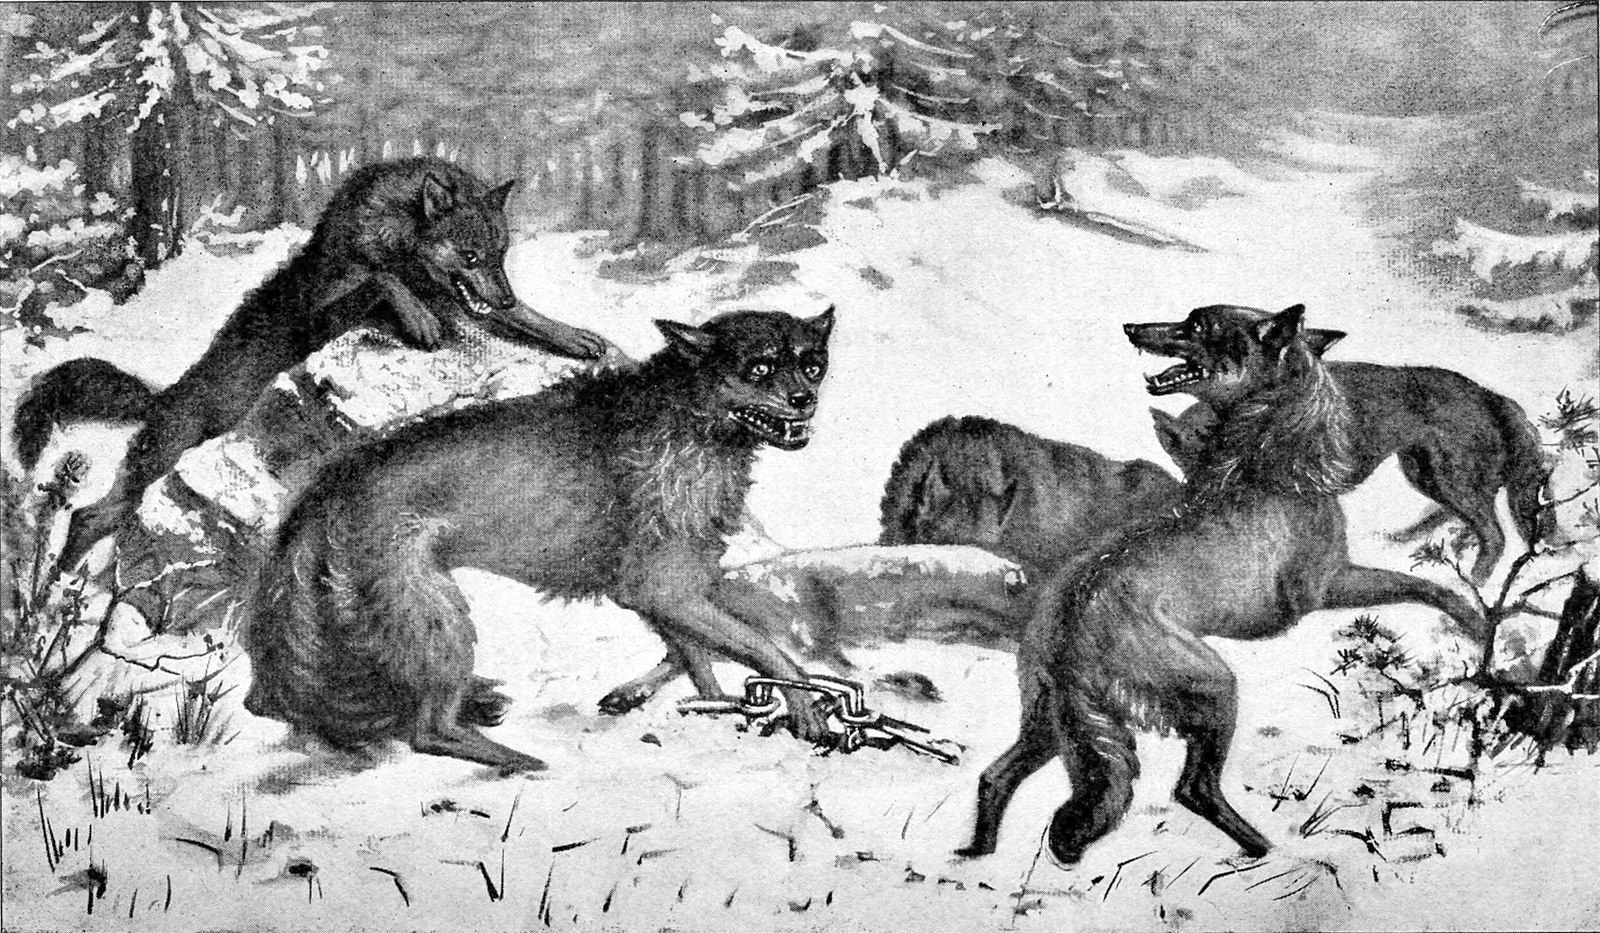 1600px-Andersch_bros._hunters_and_trappers_guide_illustrating_the_fur_bearing_animals_of_North_America_the_skins_of_which_have_a_market_value_(1906)_(18195298015).jpg